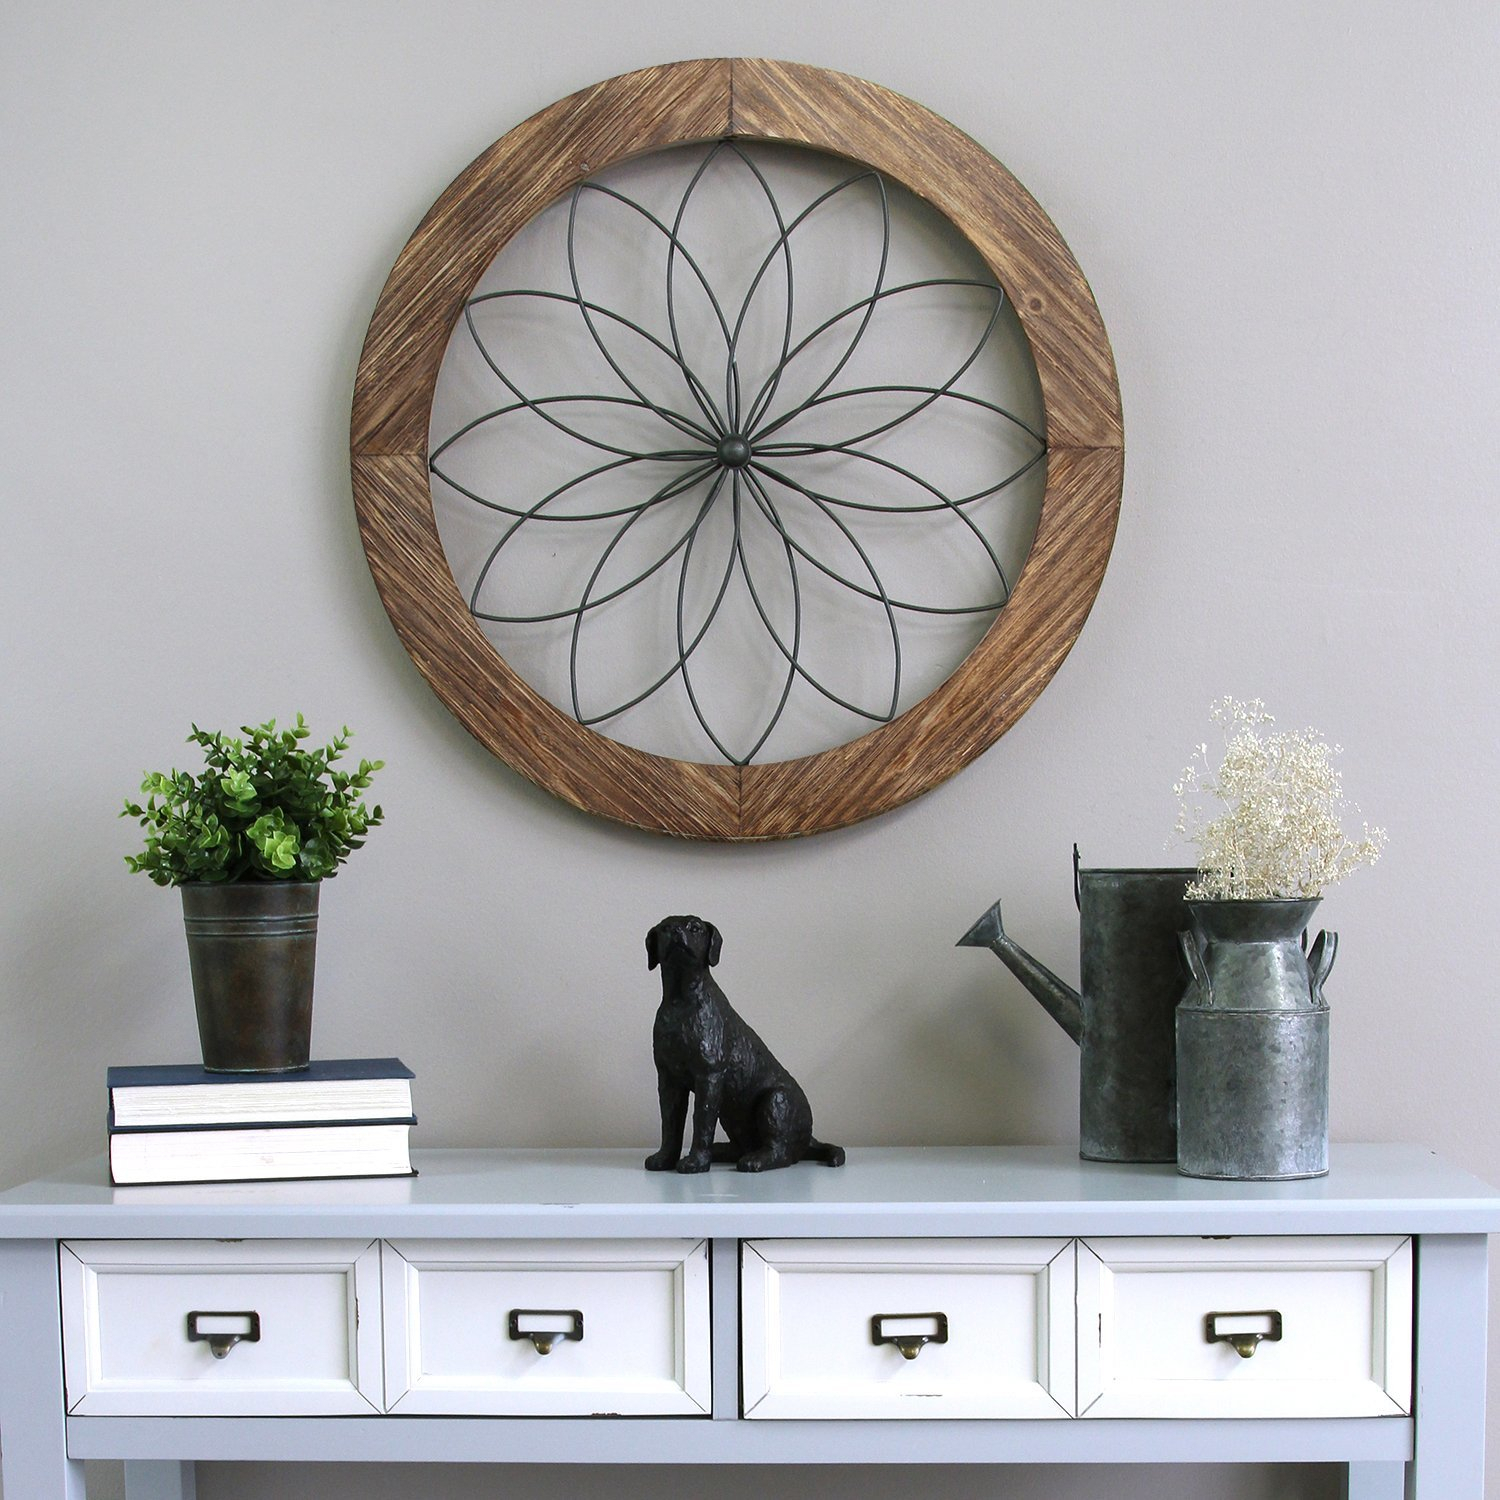 2019 August Grove Round Medallion Wood And Metal Wall Décor & Reviews Within 3 Piece Wash, Brush, Comb Wall Decor Sets (Set Of 3) (View 2 of 20)